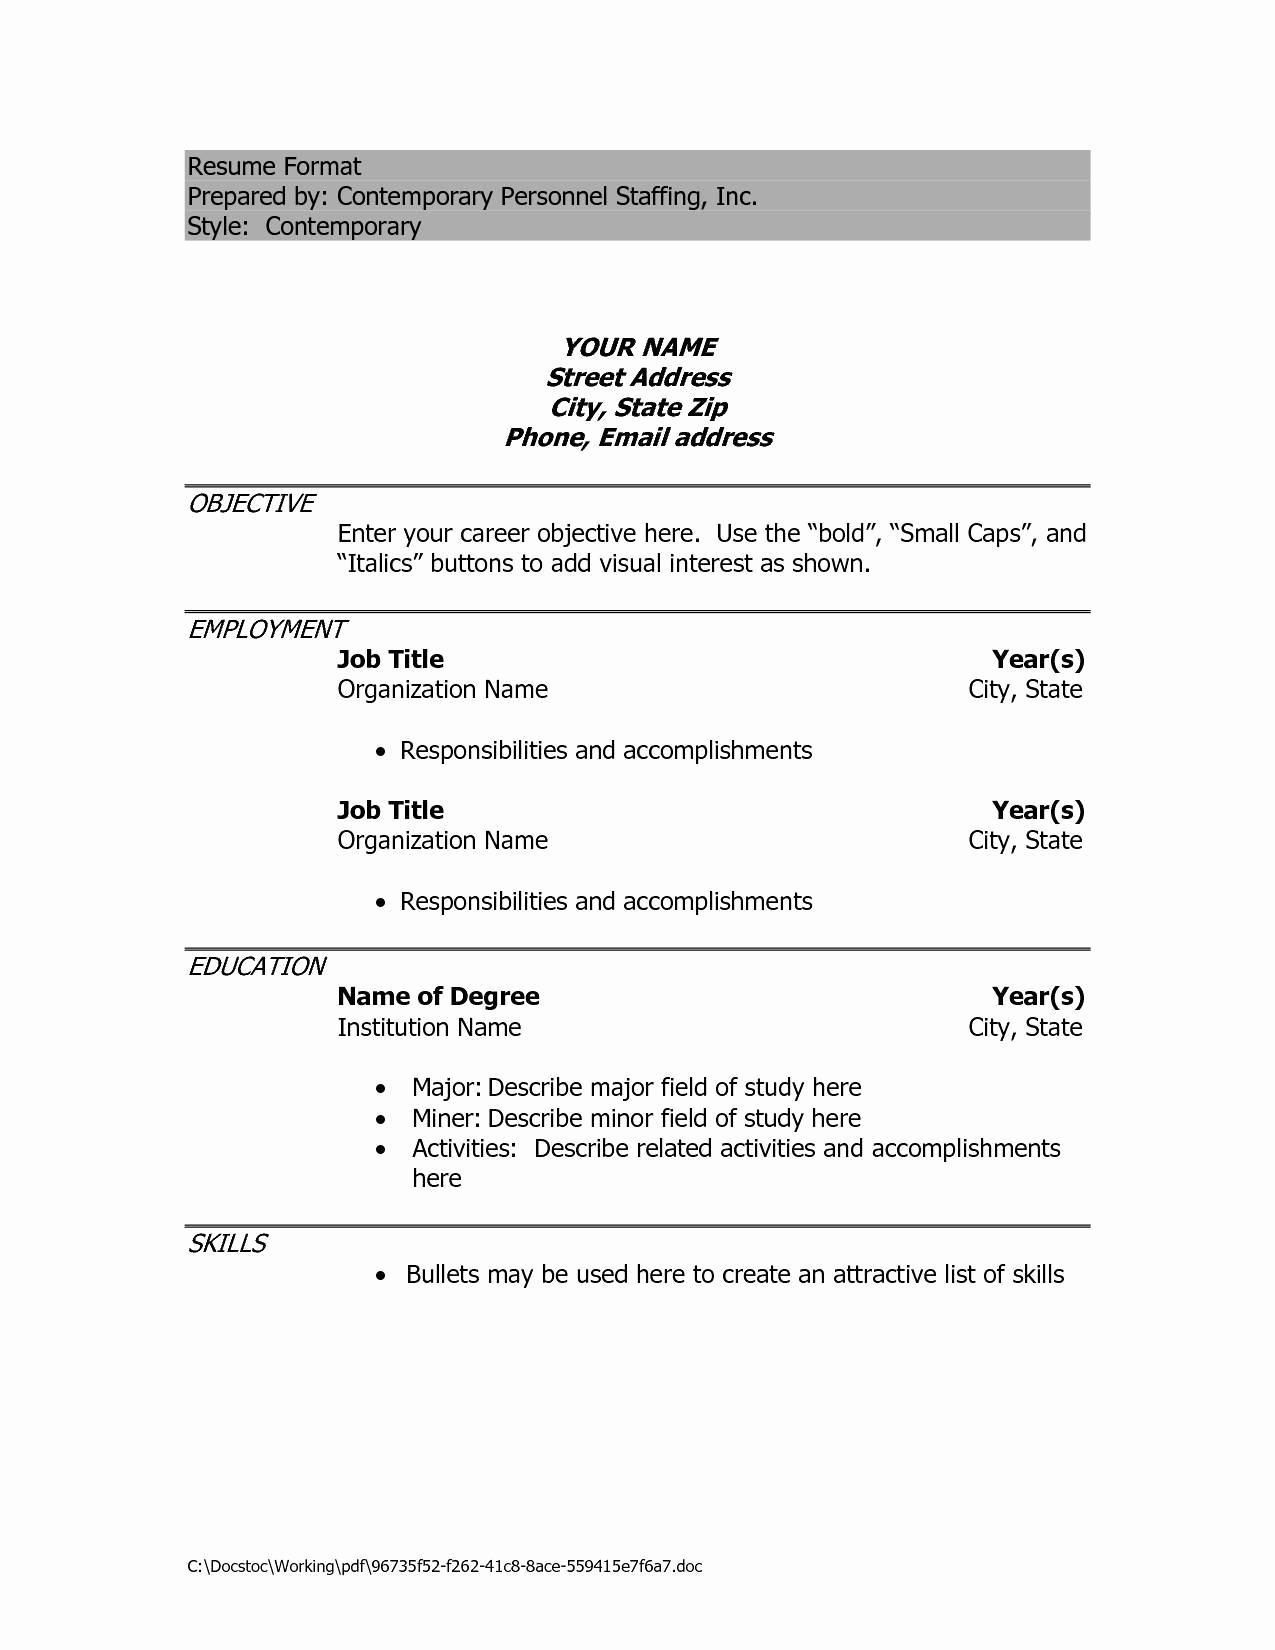 Experience Resume Format Free Download Doc